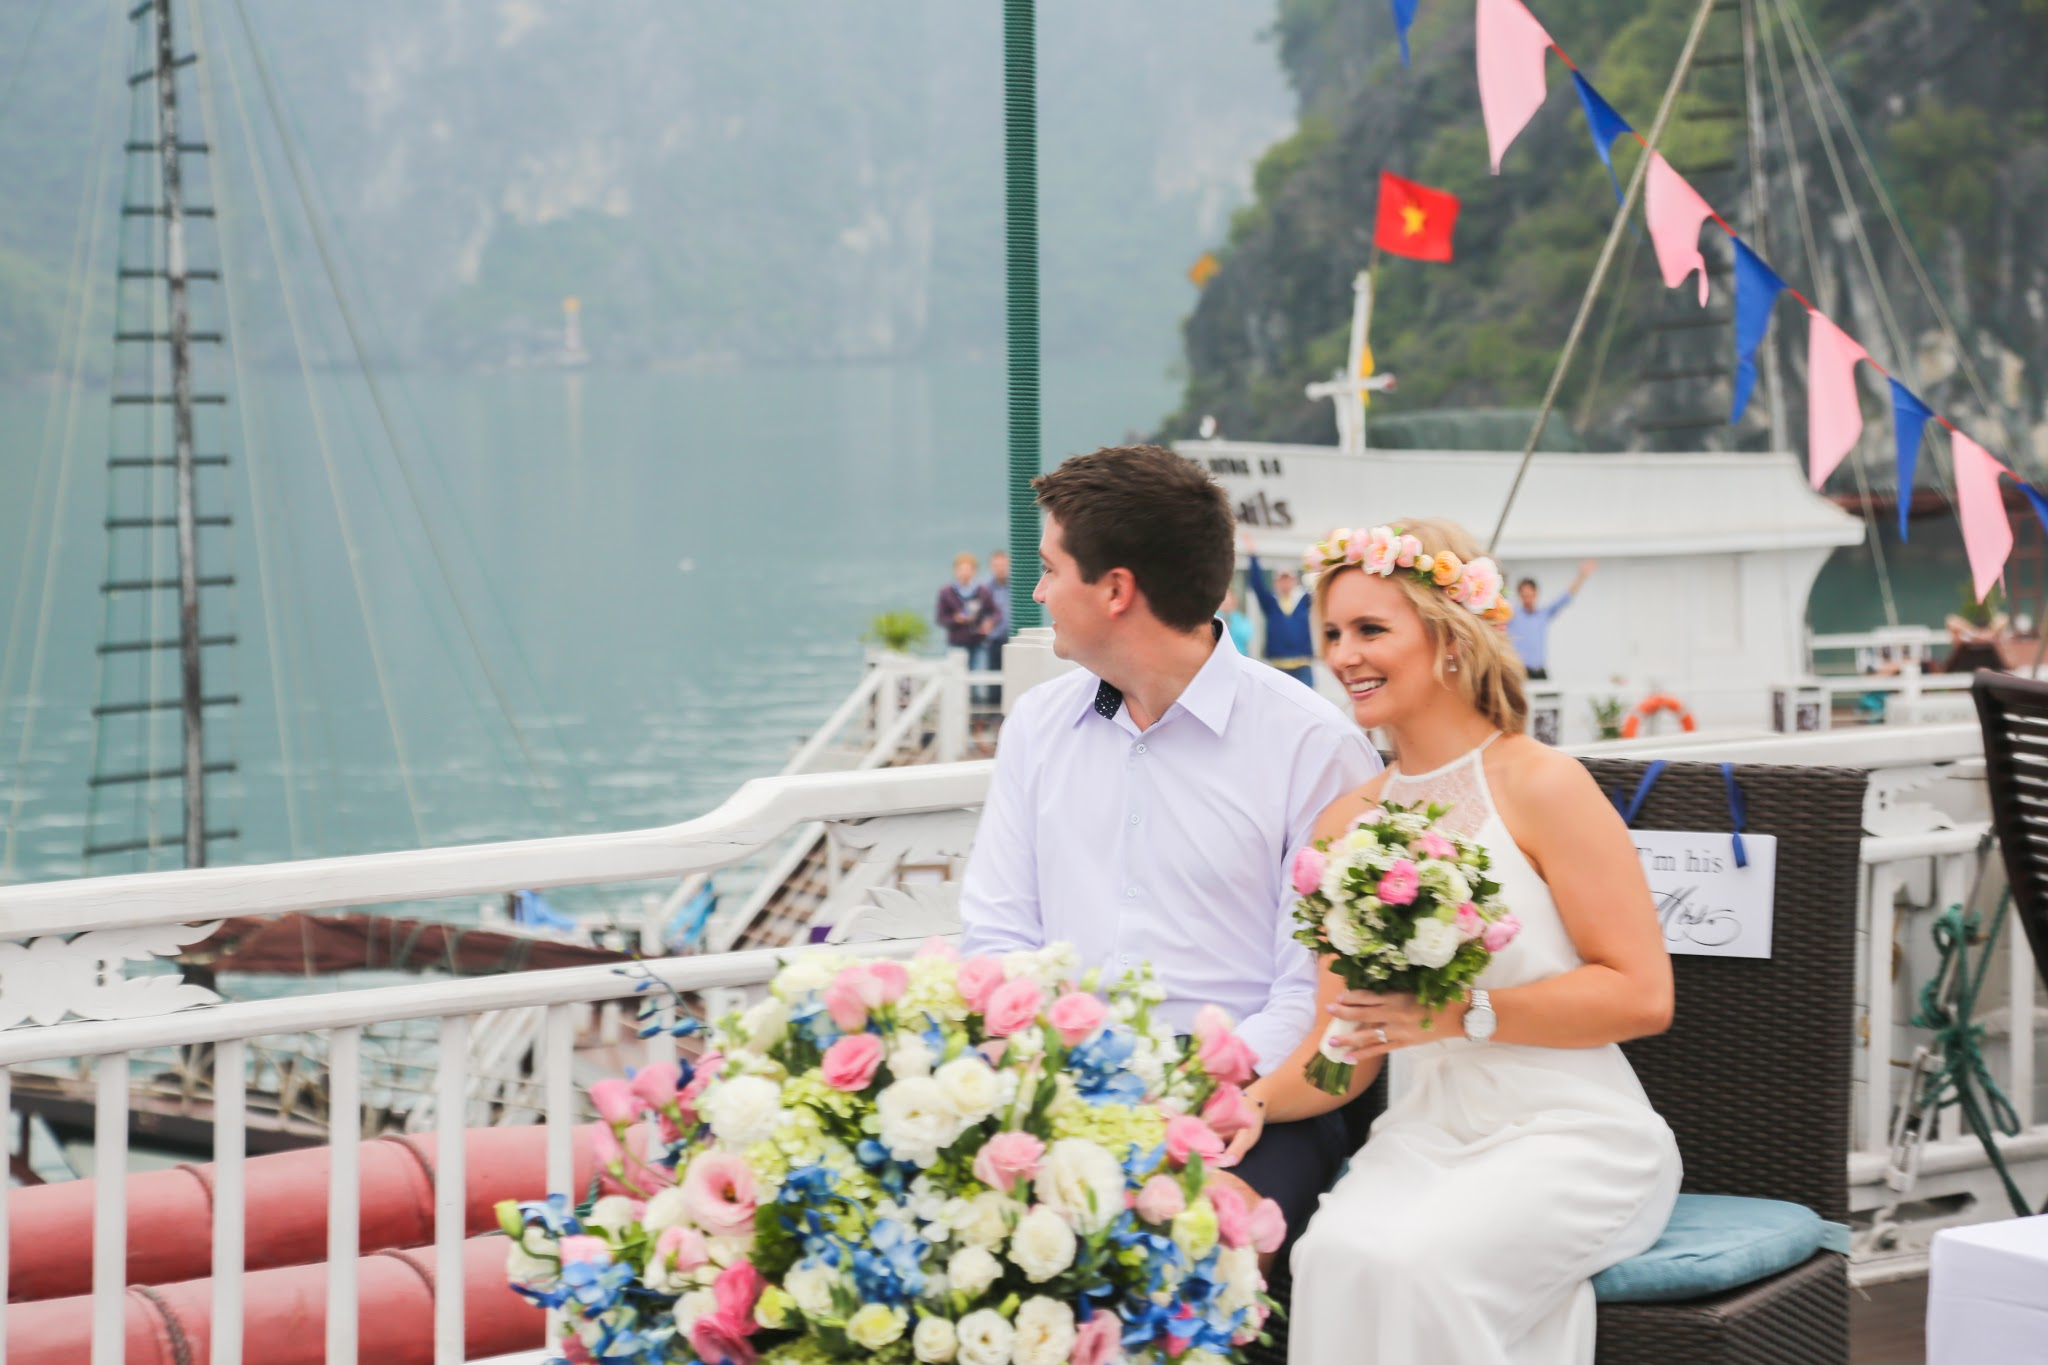 Wedding ceremony in Halong is unforgettable memory